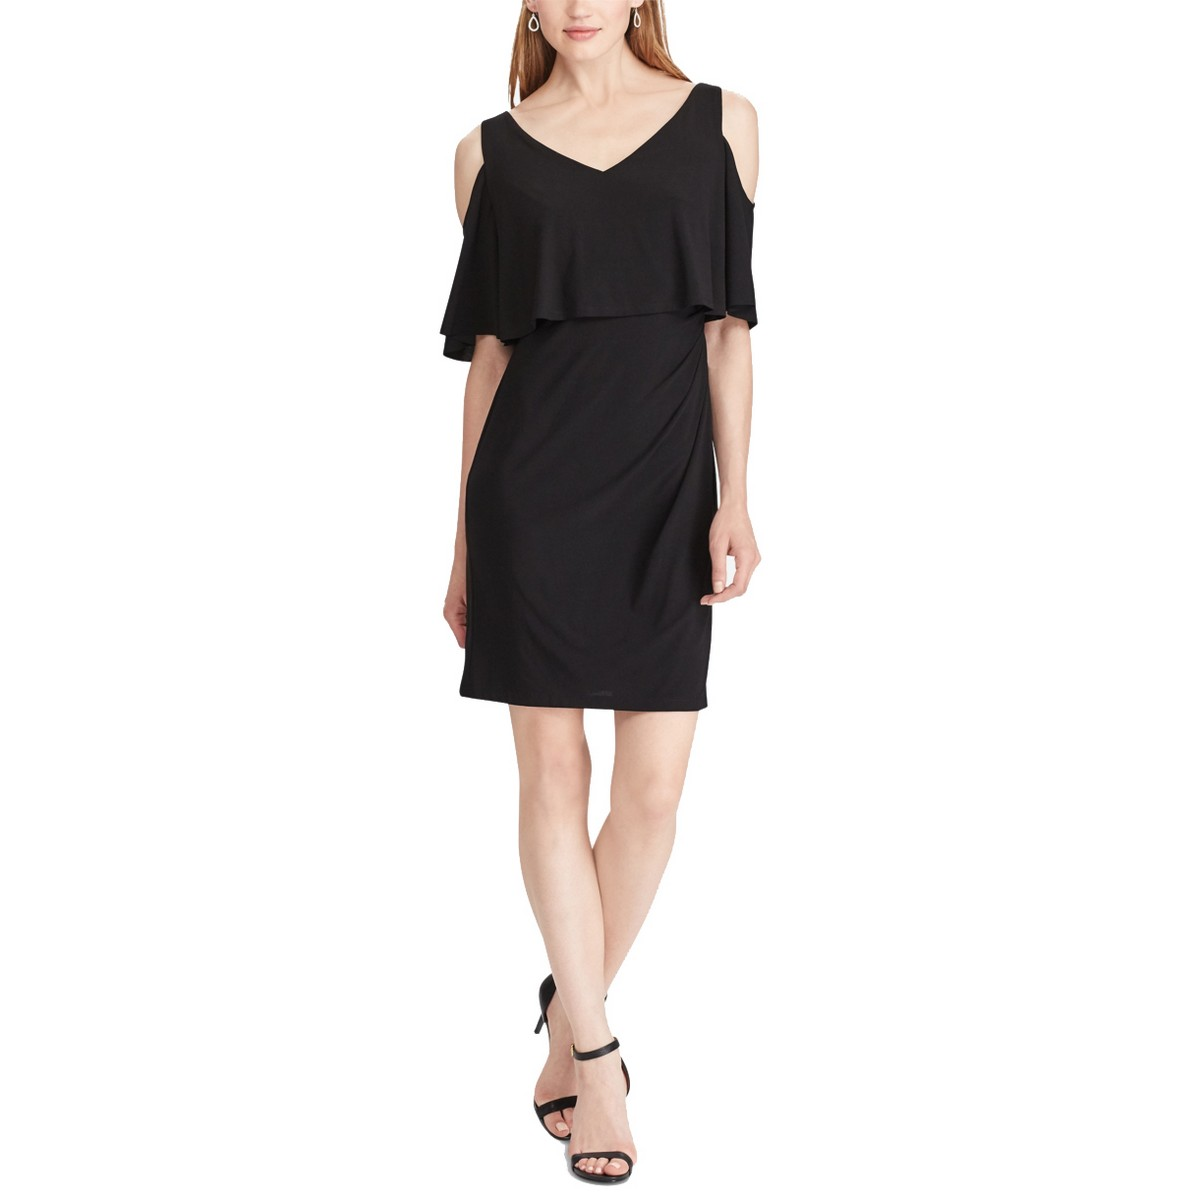 AMERICAN LIVING NEW Women/'s Black Cold-shoulder Popover A-Line Dress 10 TEDO